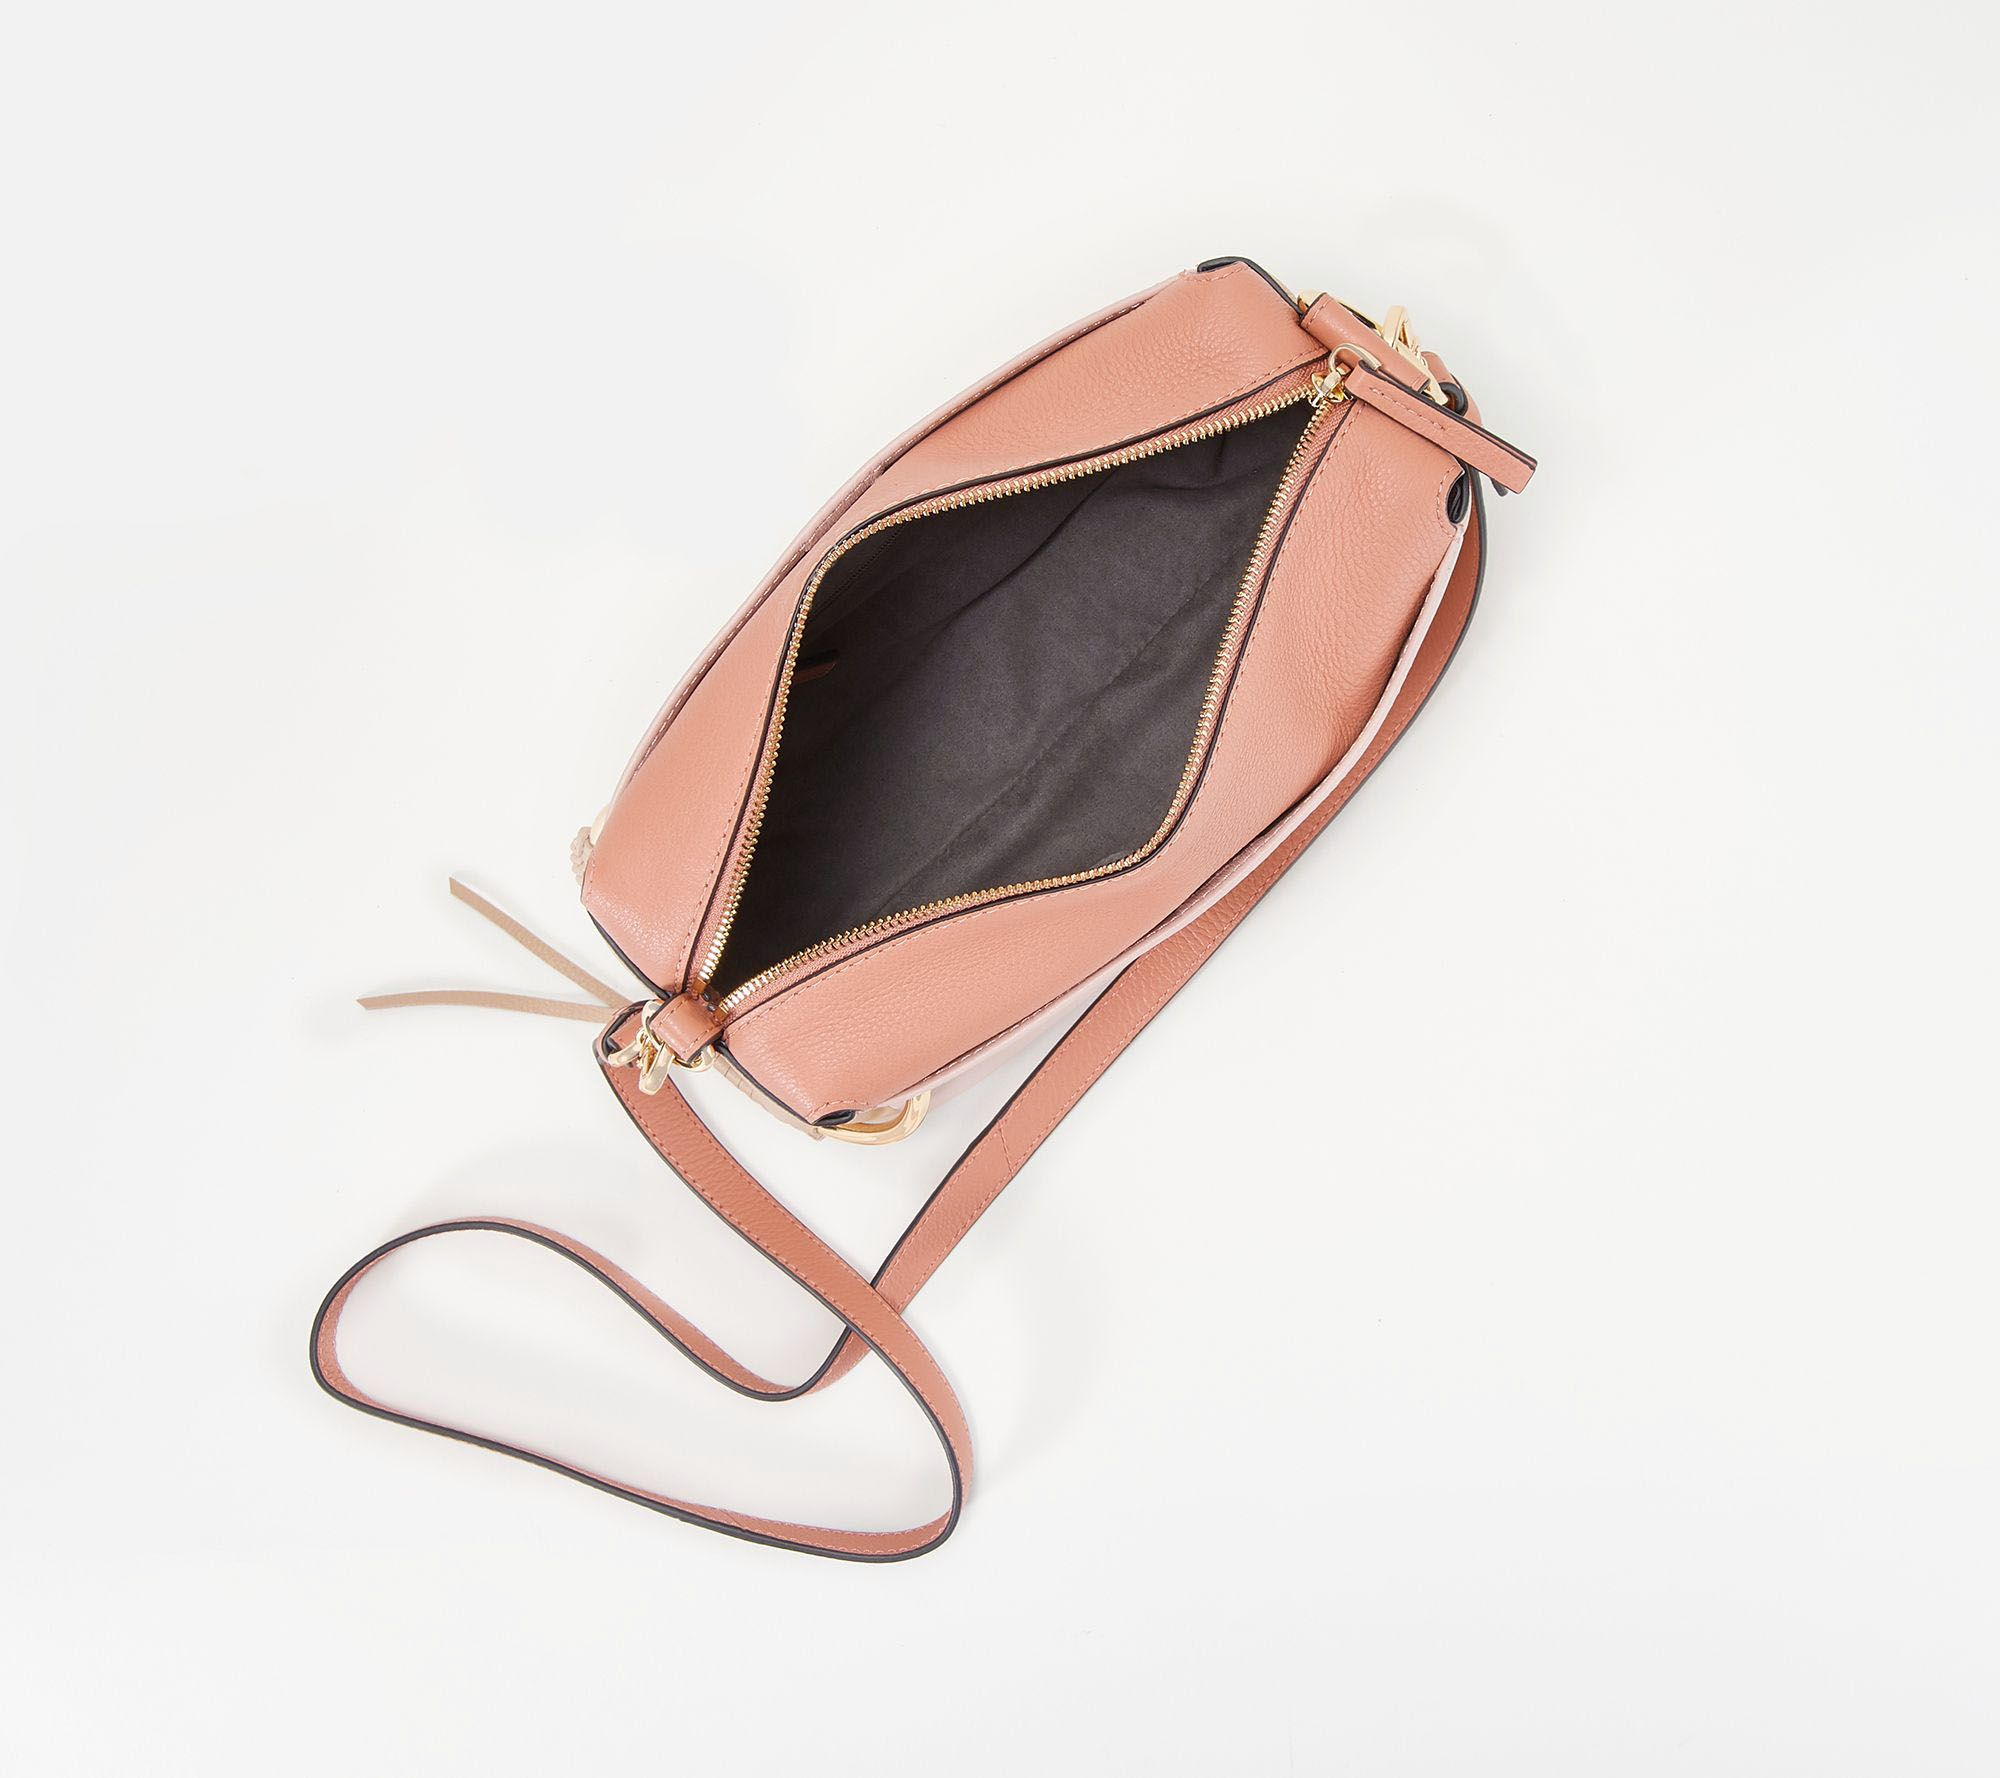 Happy Car and Bike Camper Cute Funny Women Girls Kids Cell Phone Bag Coin Wallet Crossbody Purse Zipper Pouch with Shoulder Strap